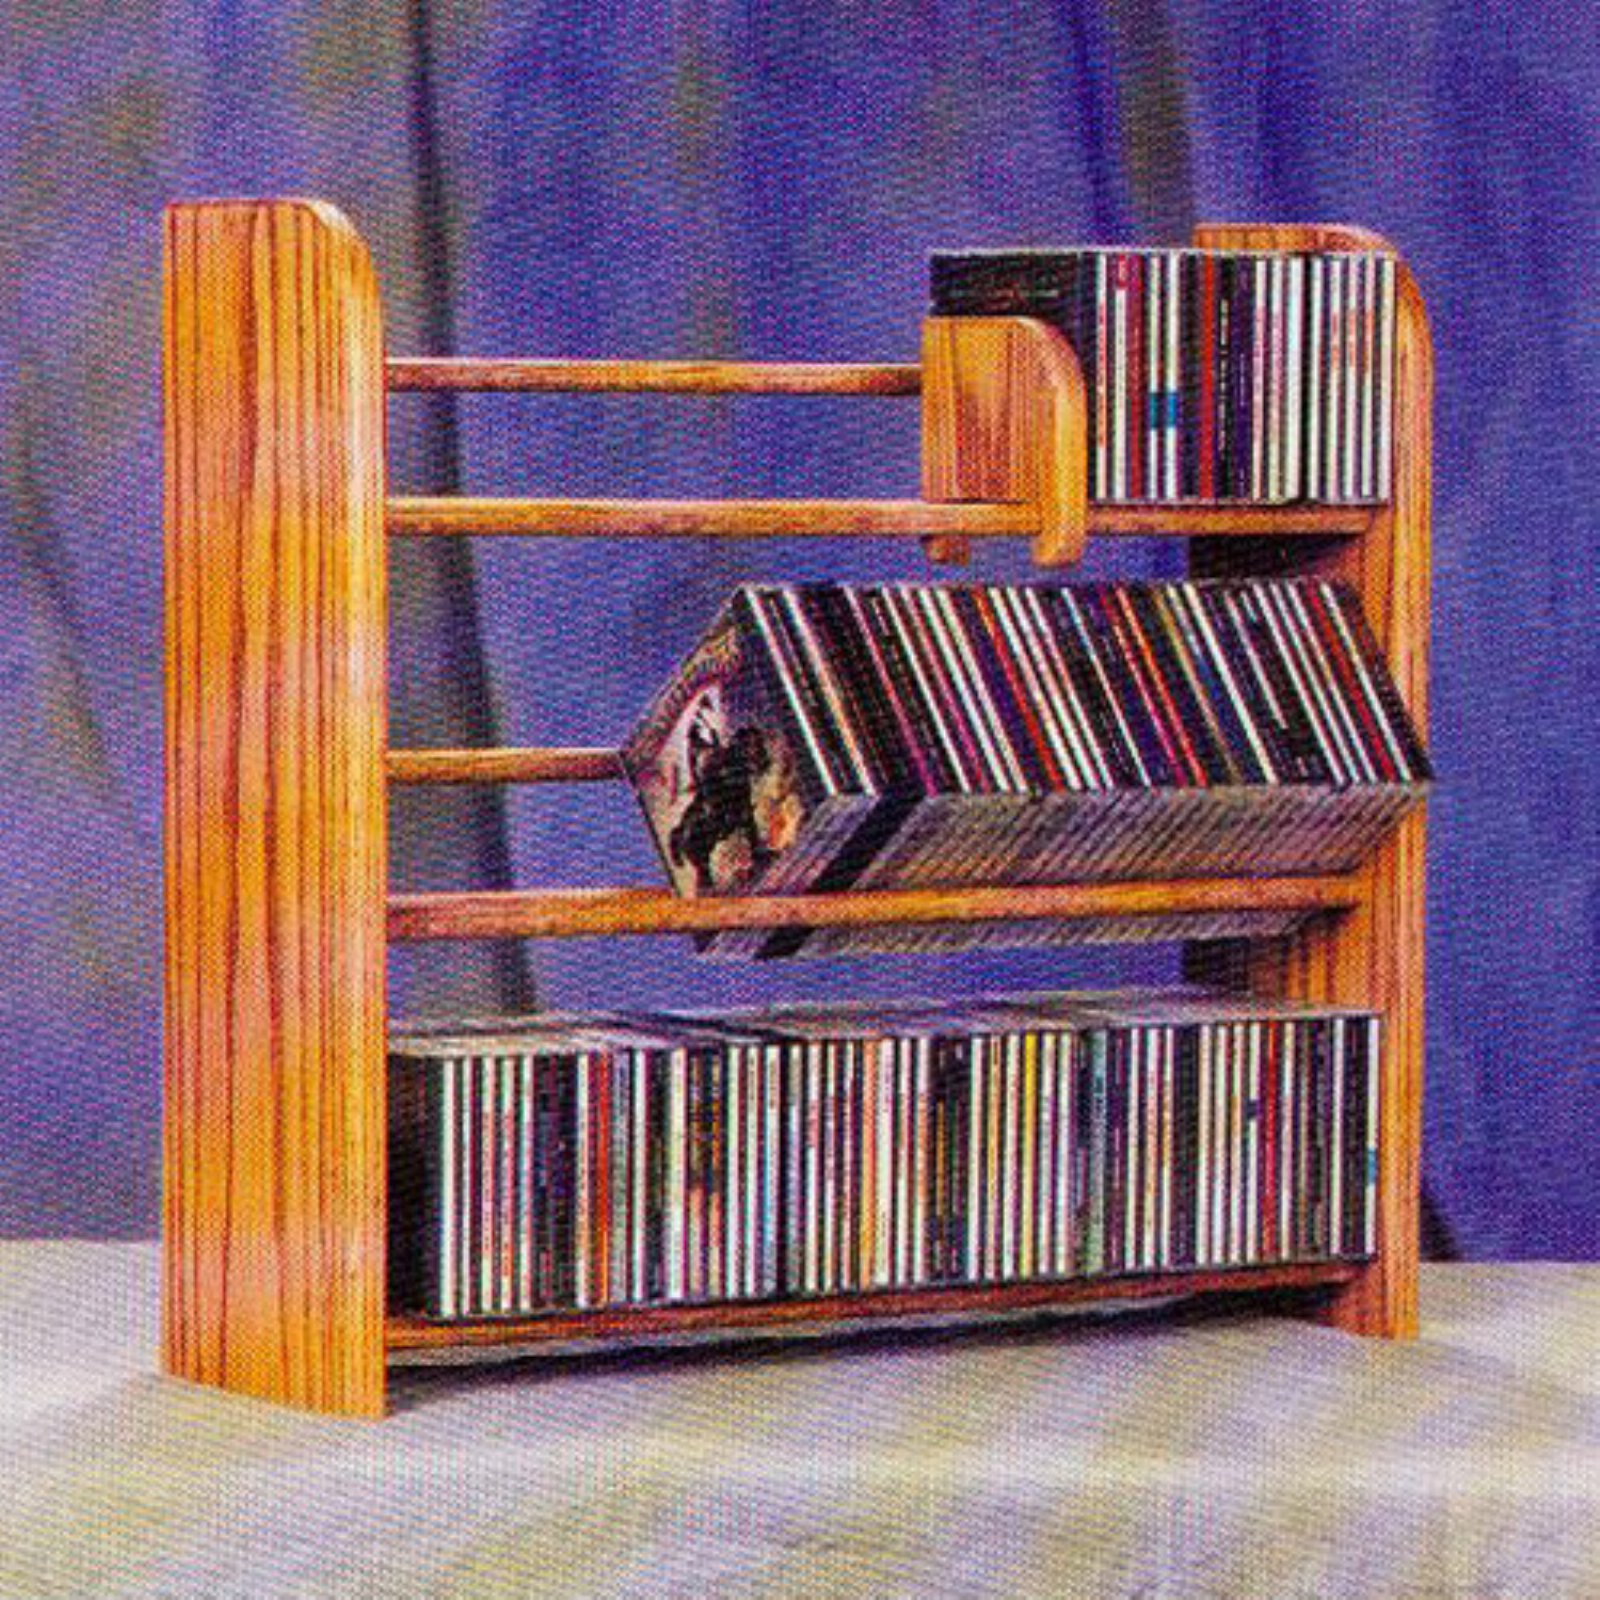 The Wood Shed Solid Oak 3 Row Dowel 165 CD Media Rack by The Wood Shed